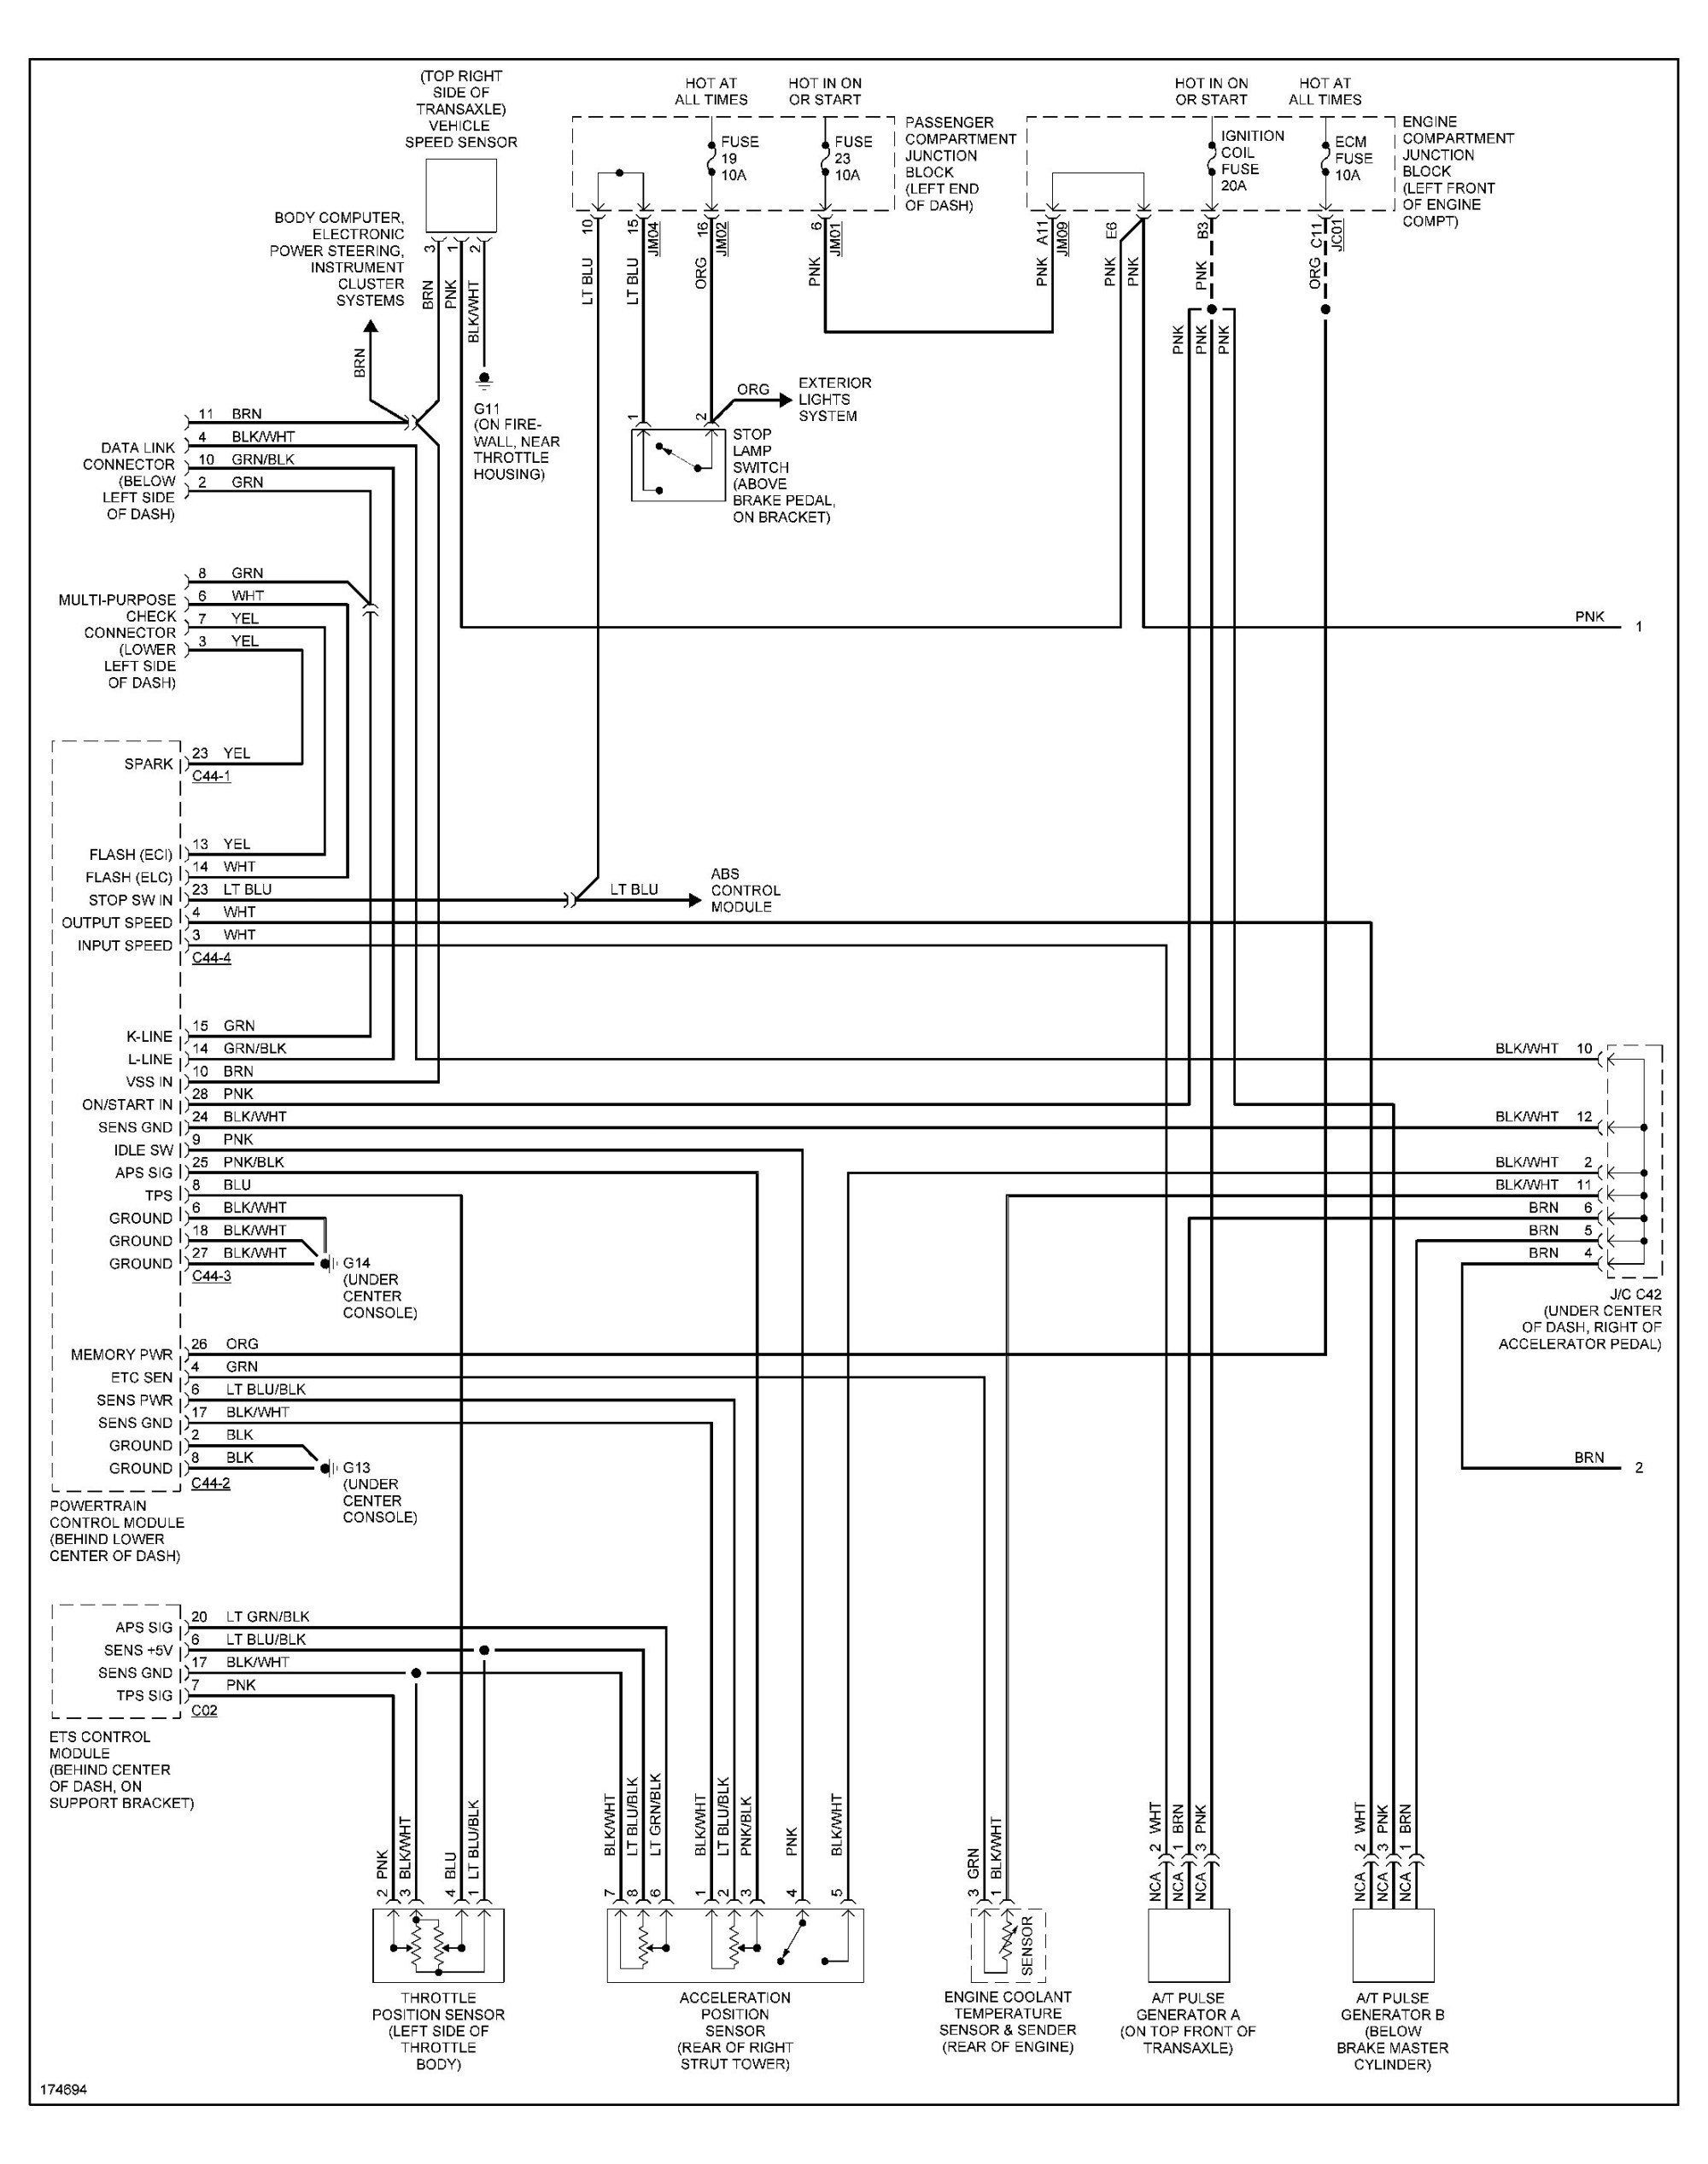 hight resolution of 2007 hyundai santa fe map sensor wiring diagram wiring diagram name 2007 hyundai santa fe fuel pump wiring diagram 2007 hyundai santa fe wiring diagram